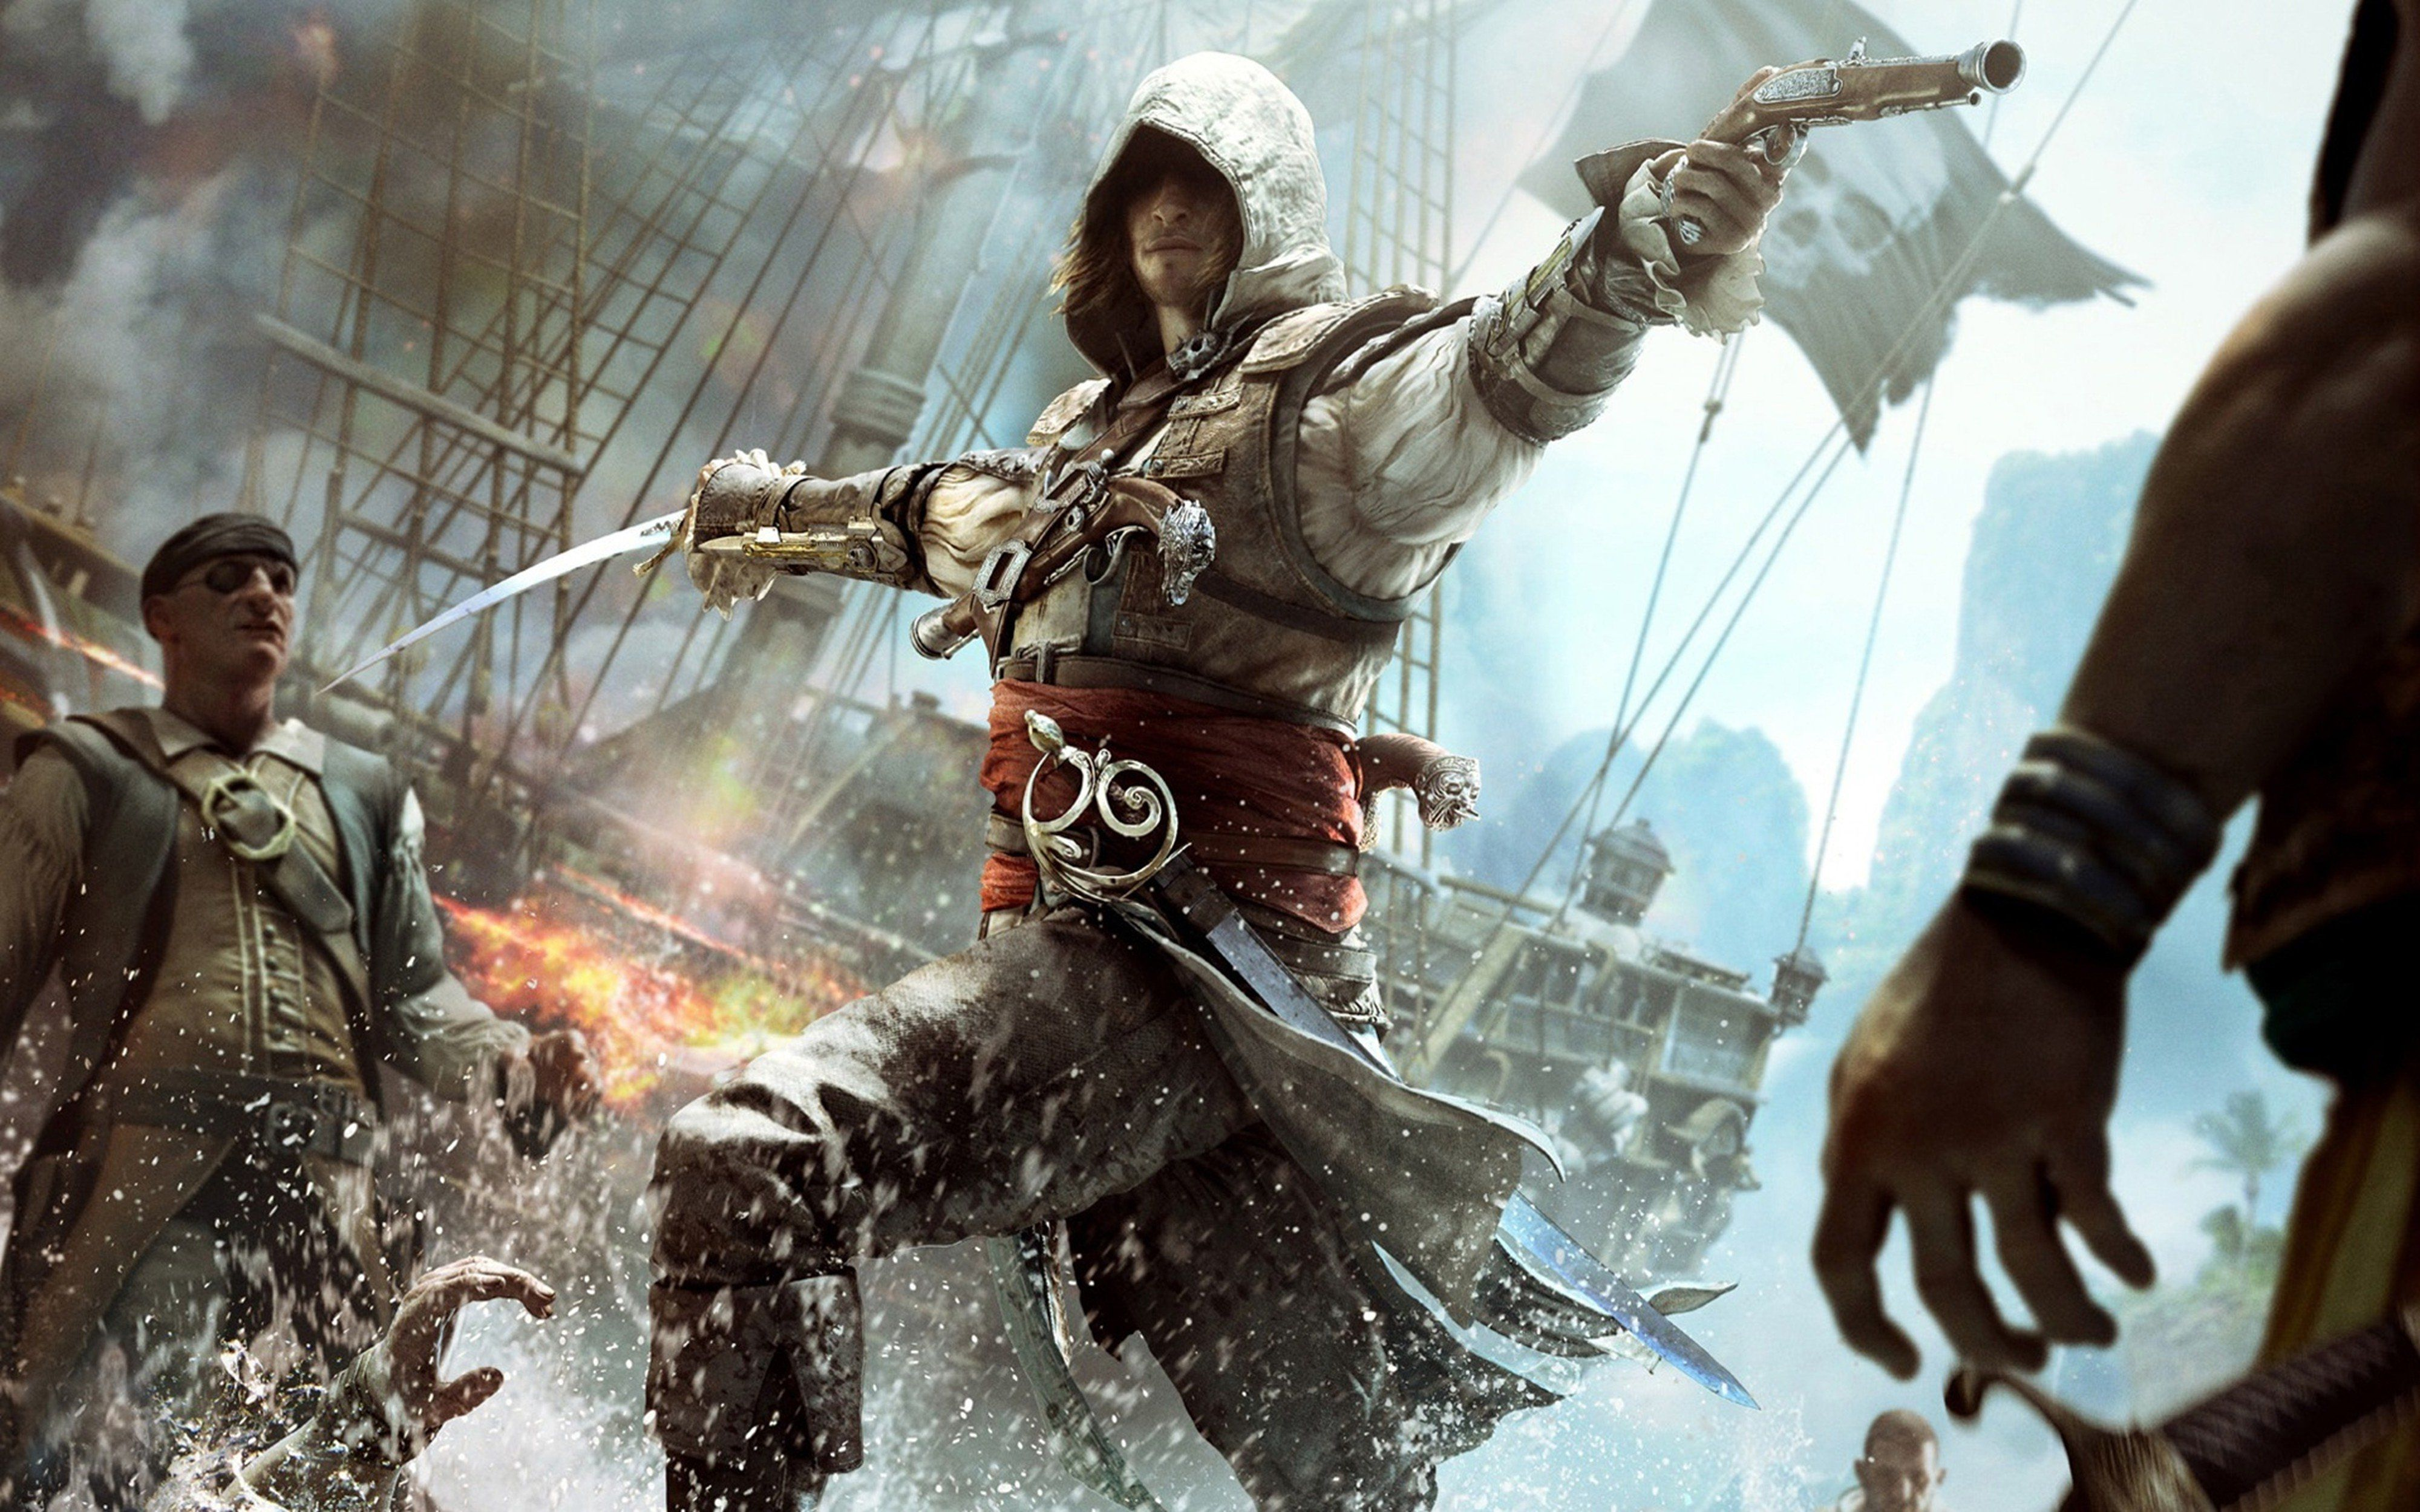 Assassin S Creed Attack Download Hd Wallpapers Of Aassassins Creed 4 Attack Pirate Ship Assassin S Creed Black Assassins Creed Black Flag Assassins Creed 4